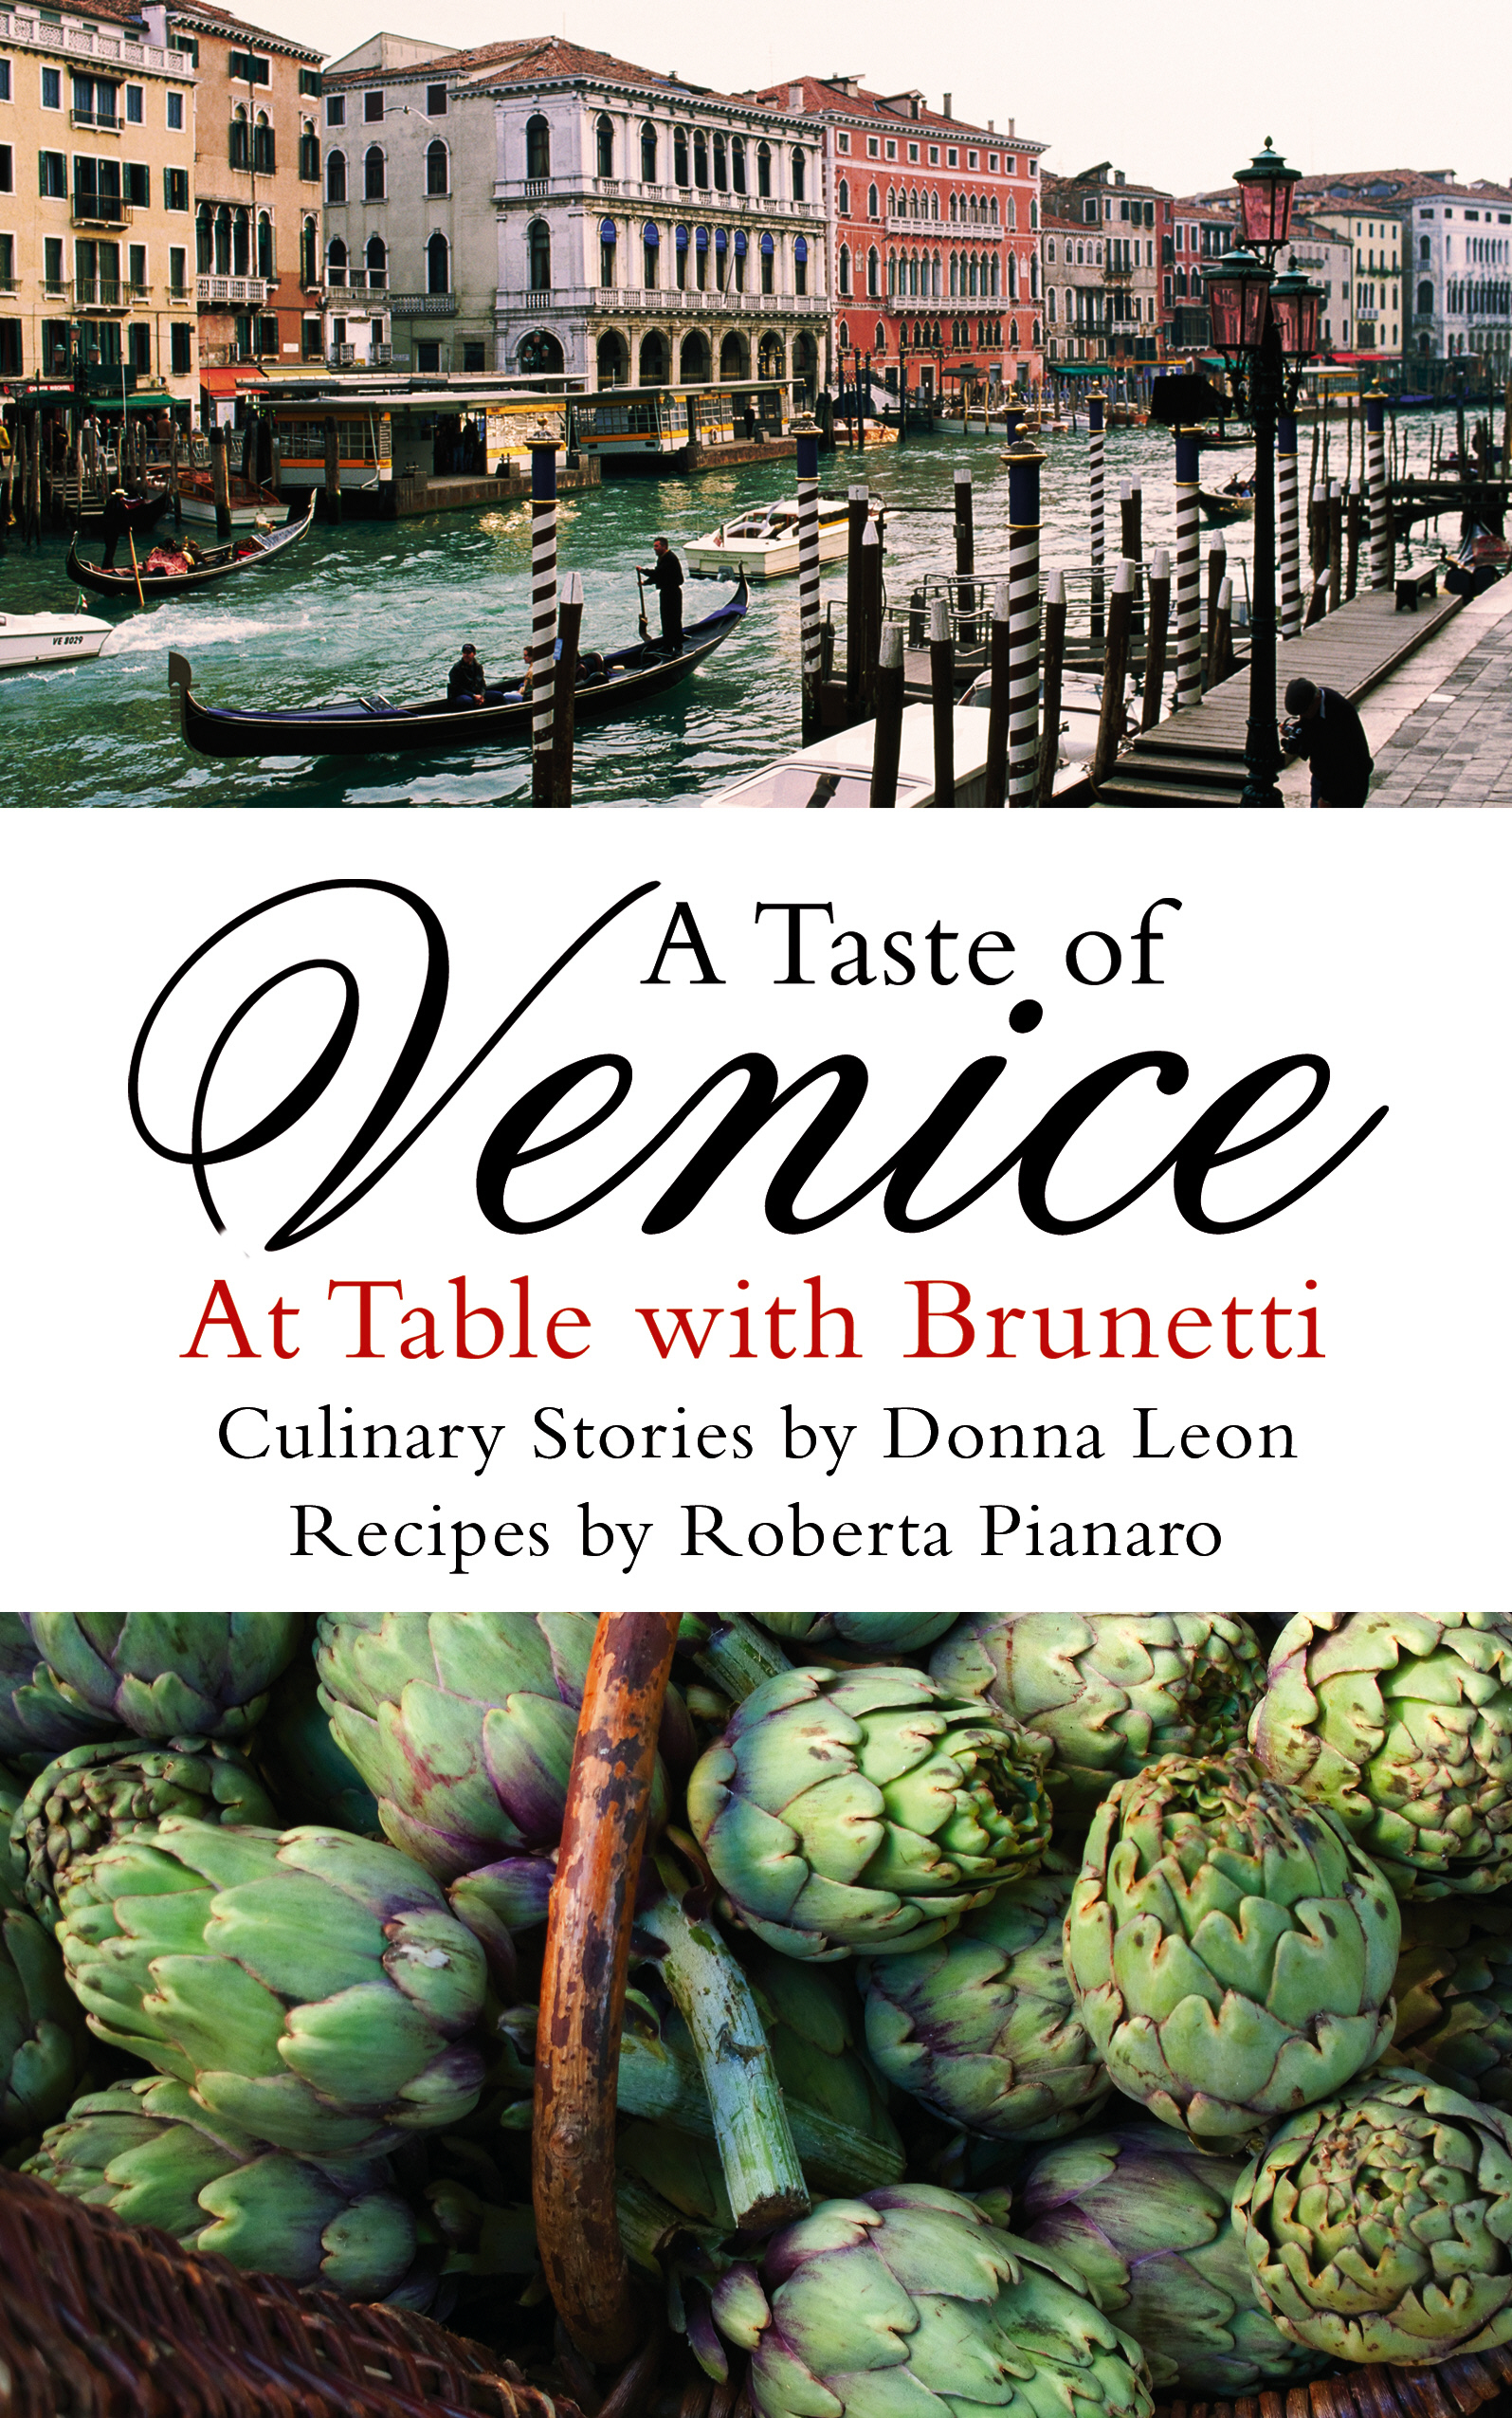 A Taste of Venice At Table with Brunetti